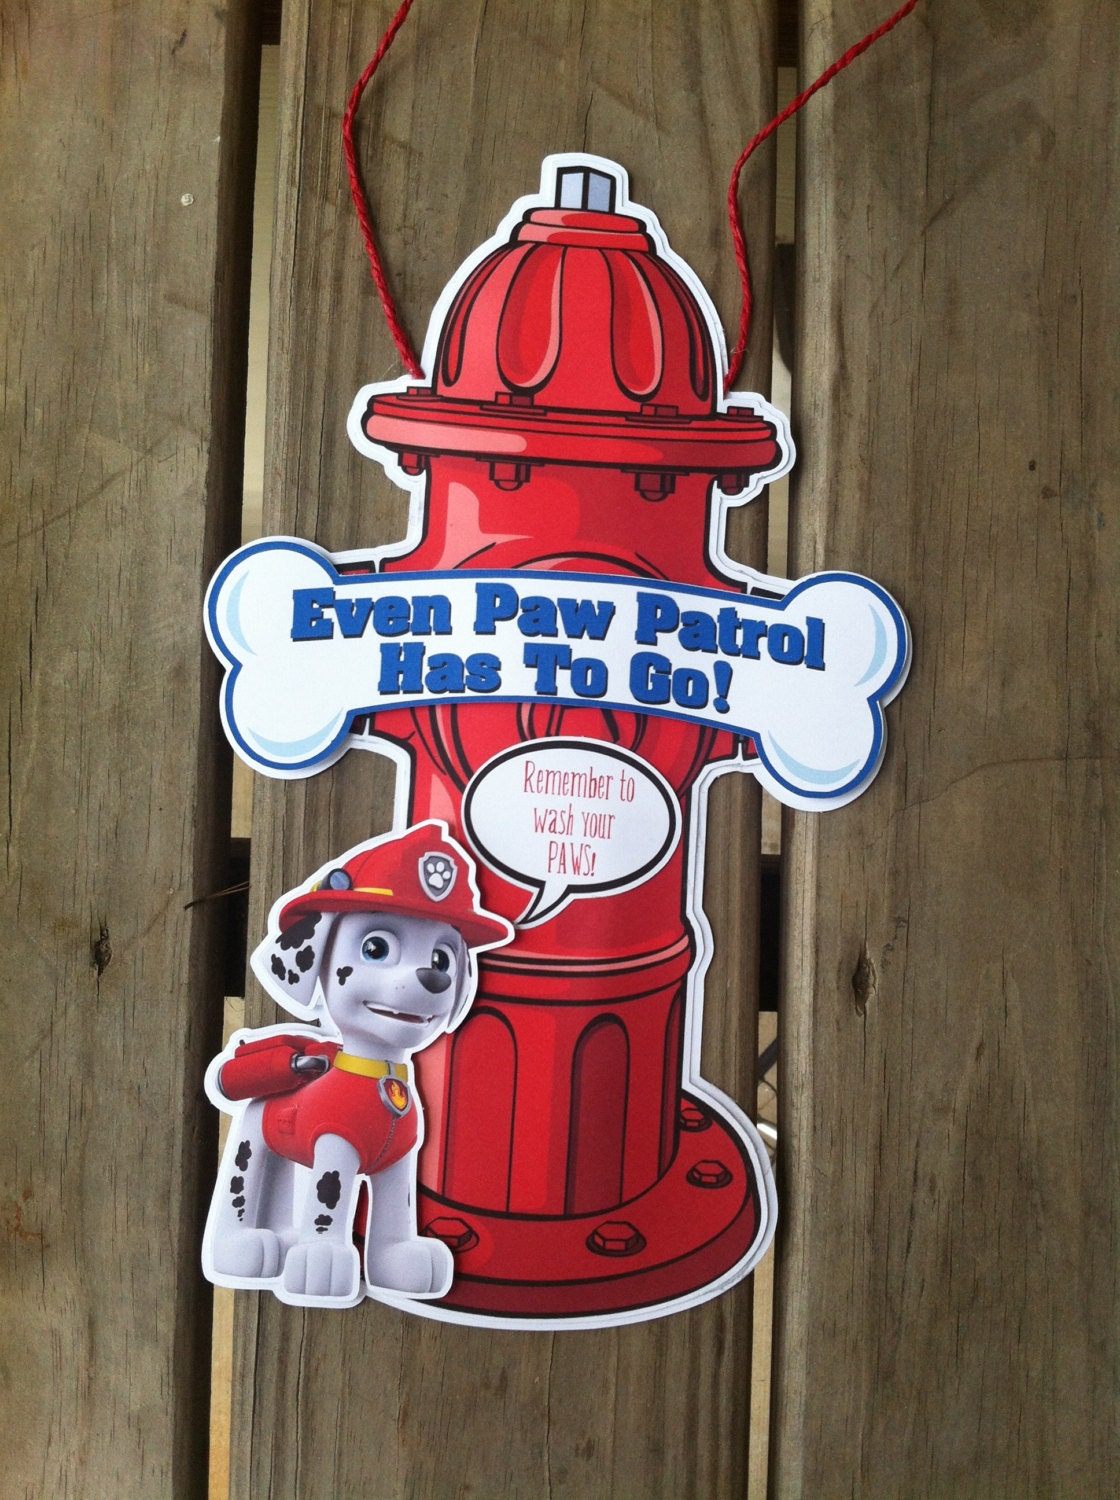 Paw Patrol Party Potty Door Sign Paw Patrol Birthday Party. Persona Banners. Free Printable Wedding Hashtag Signs. Autism Speaks Signs. Number Murals. Black Spider Logo. Street Chinese Murals. Watercolor Banners. Tumblr Movie Stickers